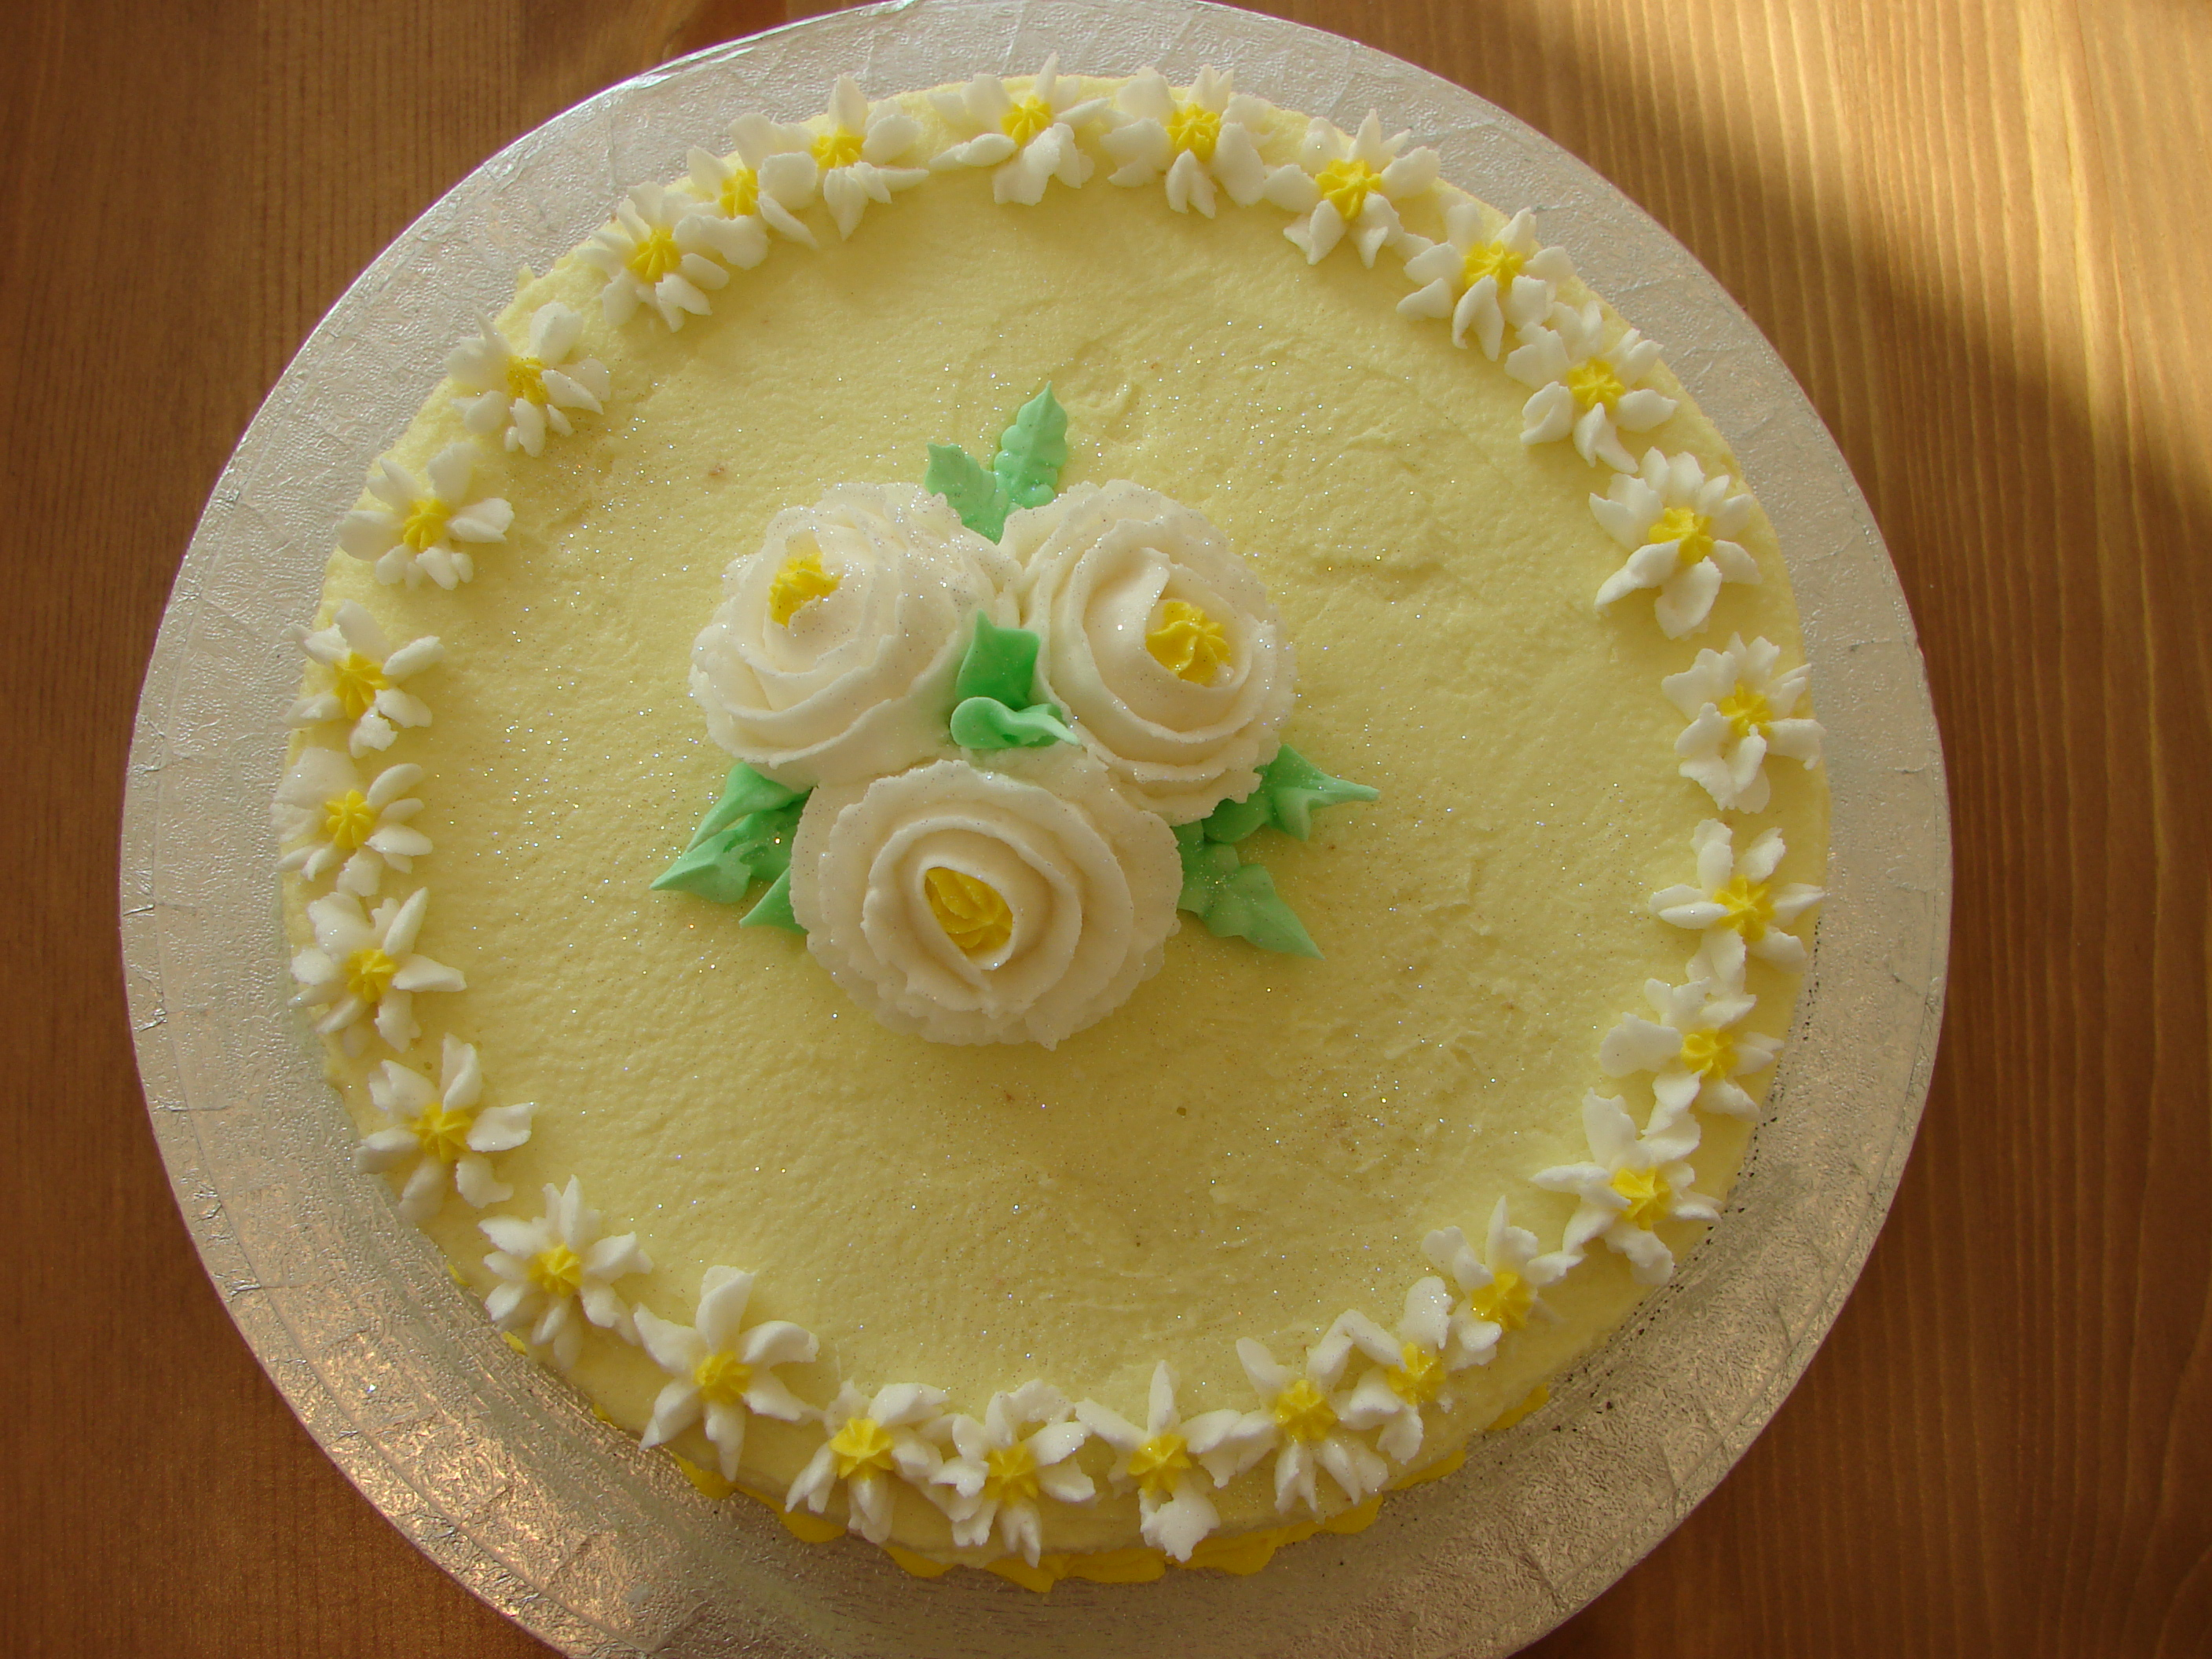 Lemon Drizzle Cake With Icing And Flowers